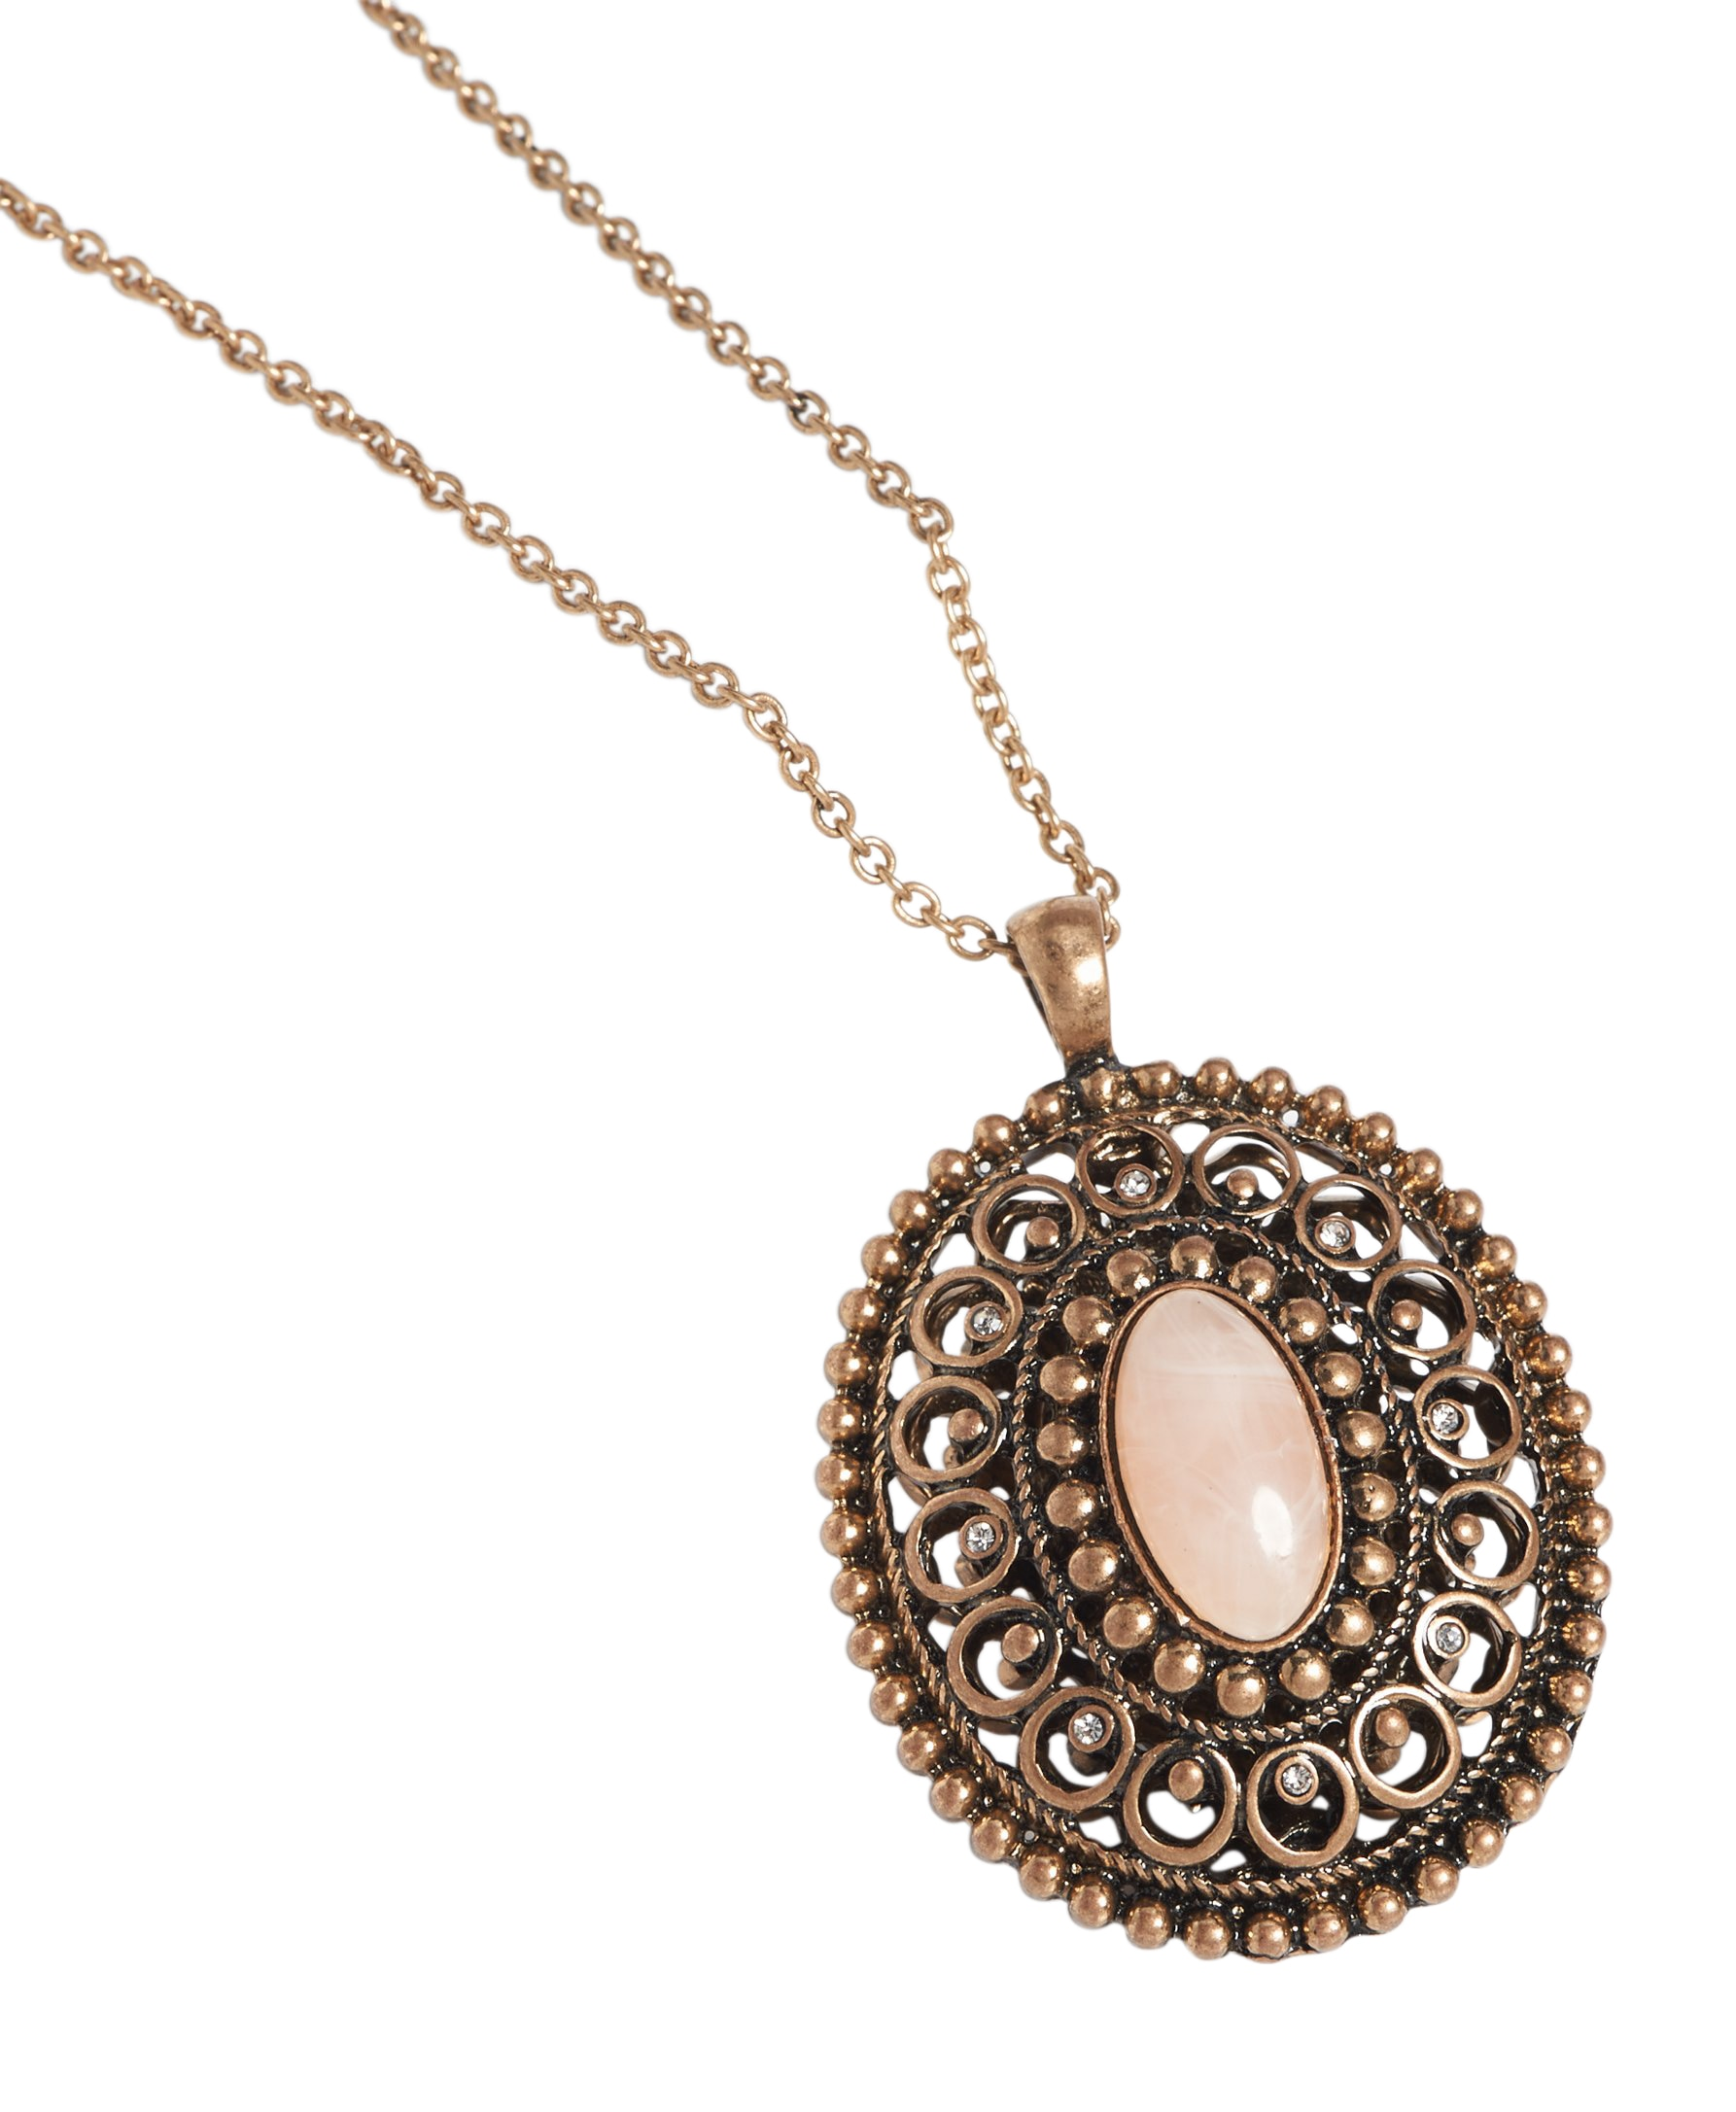 Reversible Oval Pendant Necklace